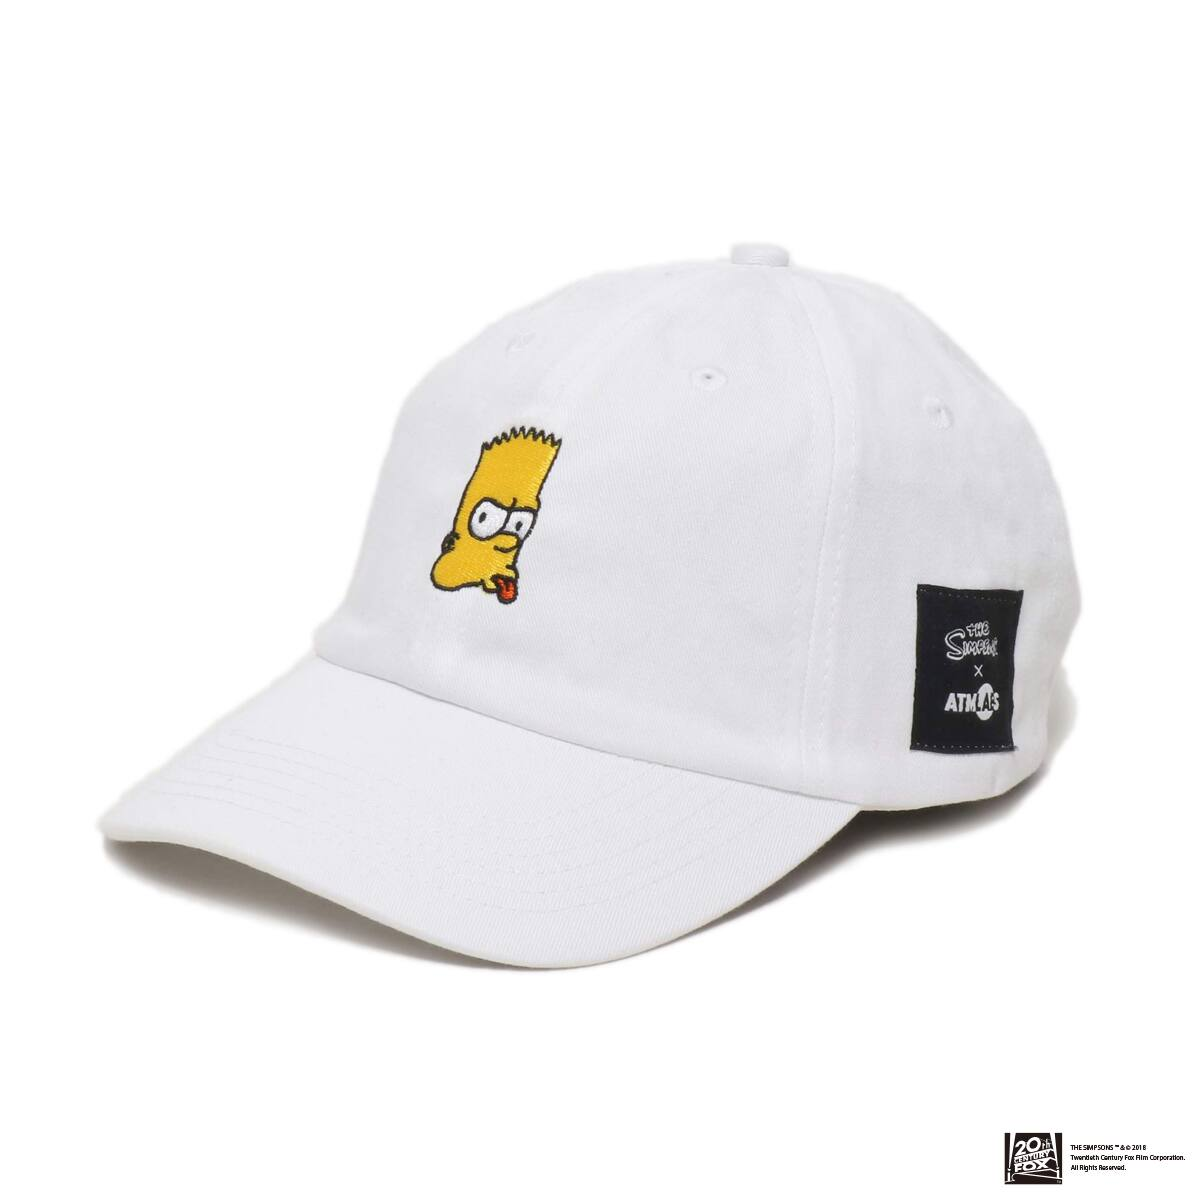 THE SIMPSONS x ATMOS LAB BART EMBROIDERY 6 PANEL CAP  WHITE 18FW-I_photo_large